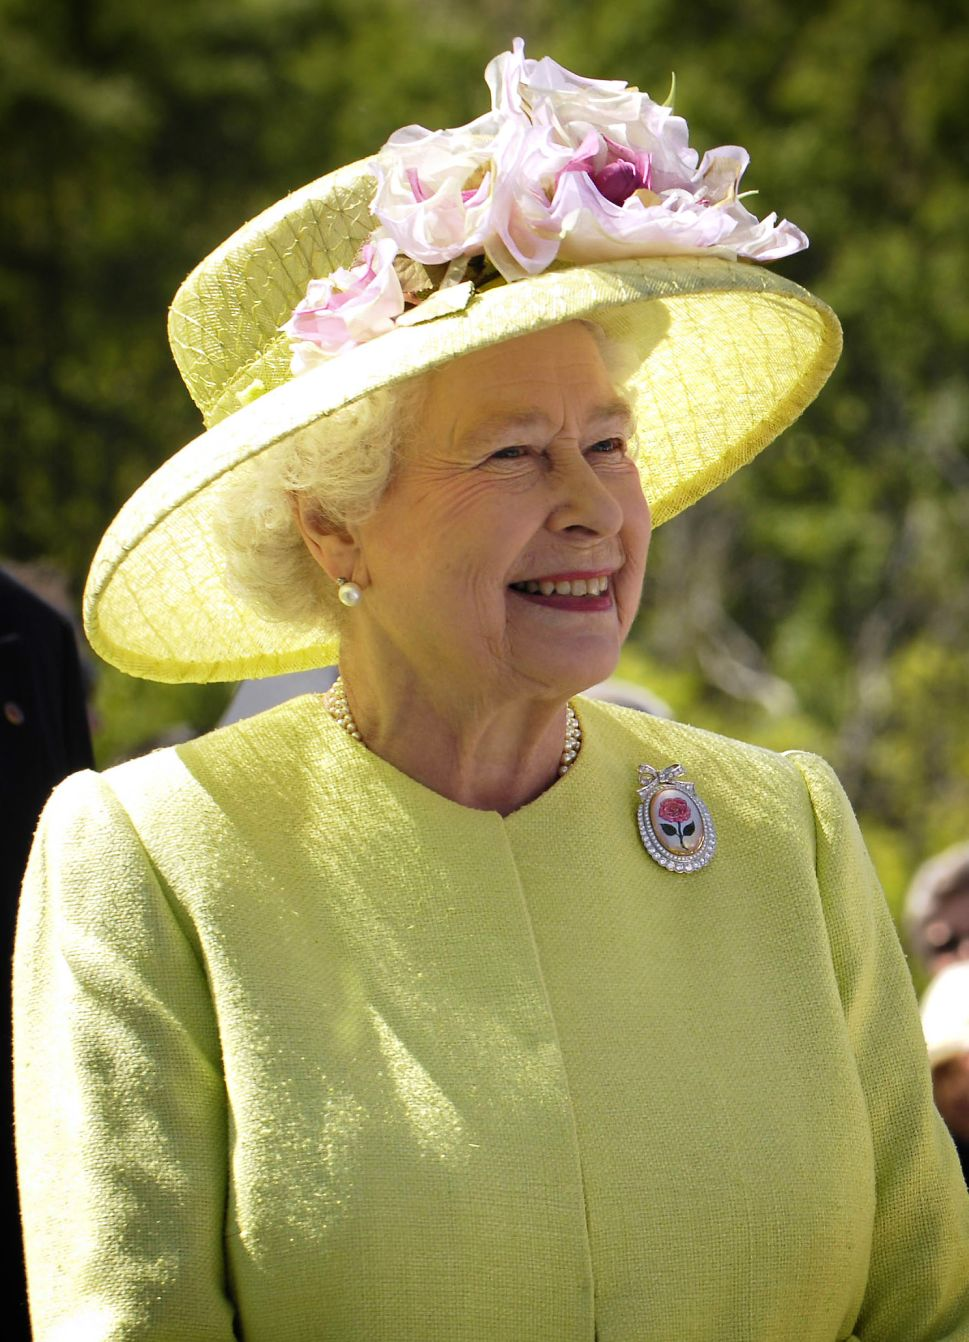 Queen Elizabeth II: A High Tech Monarch